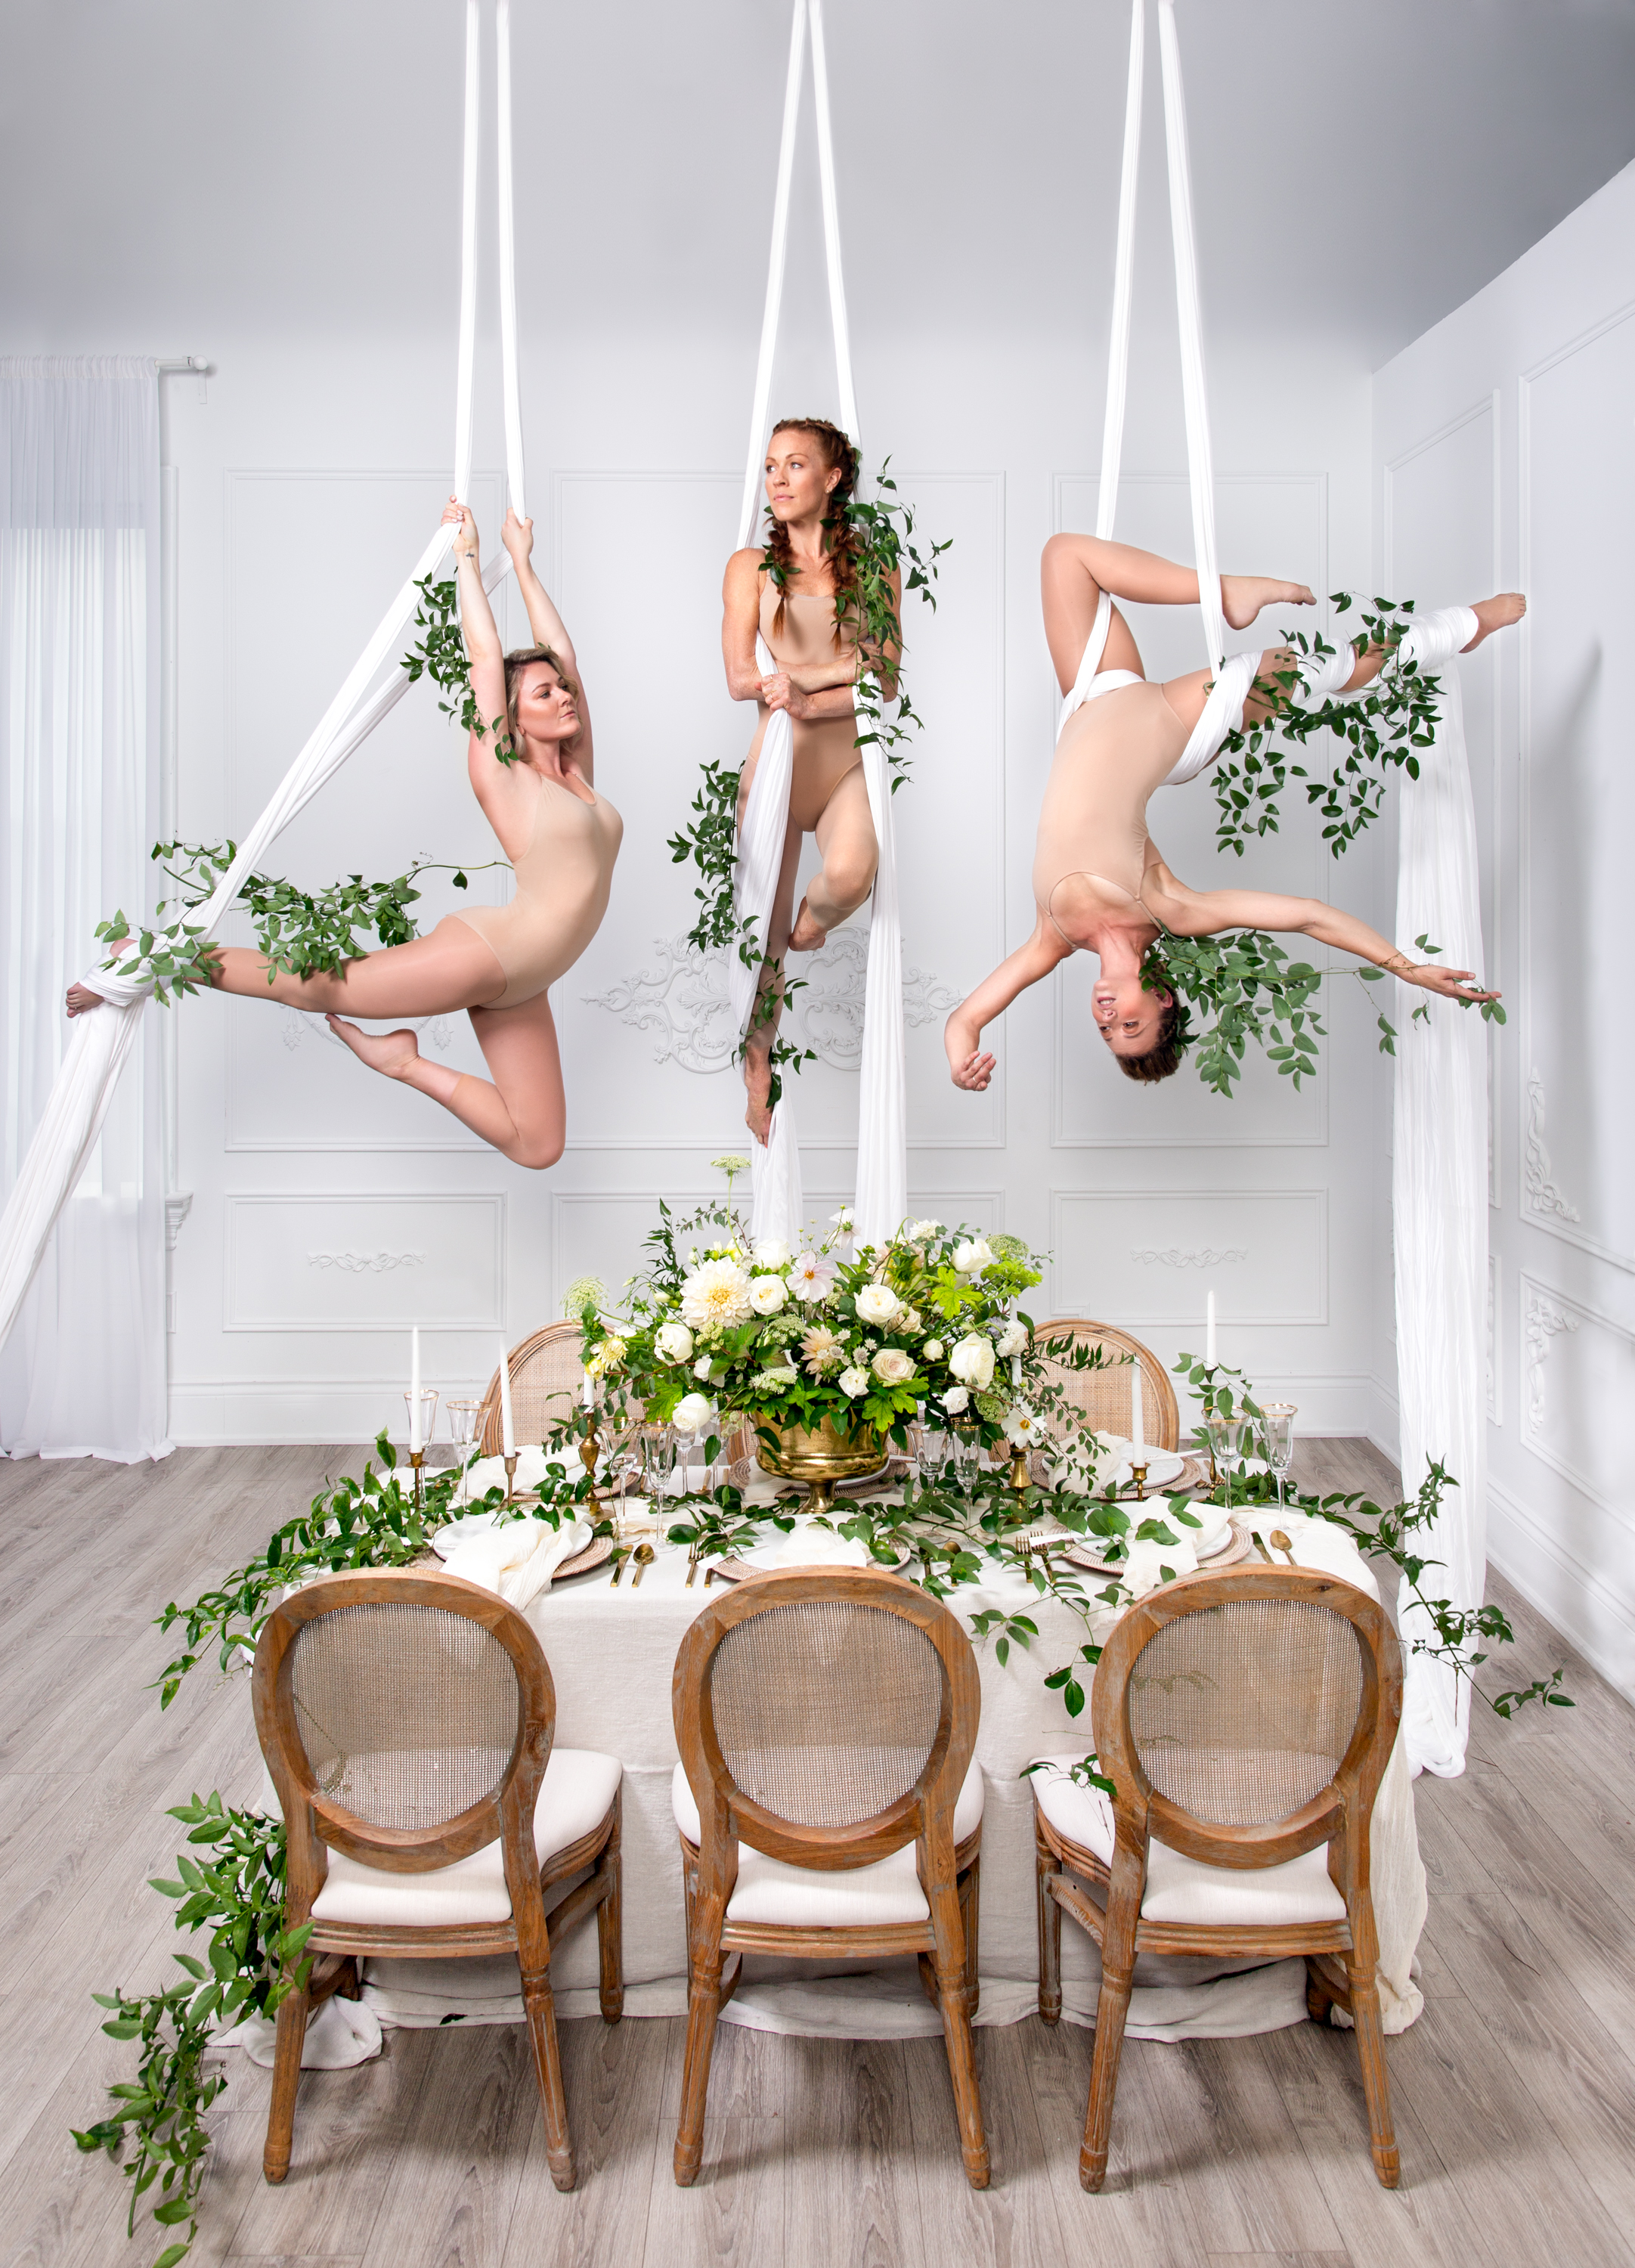 Table Shot Aerial Silks Dancers Behind The Scenes, Zsuzsi Pal Photography, Toronto Burlington Wedding Photographer